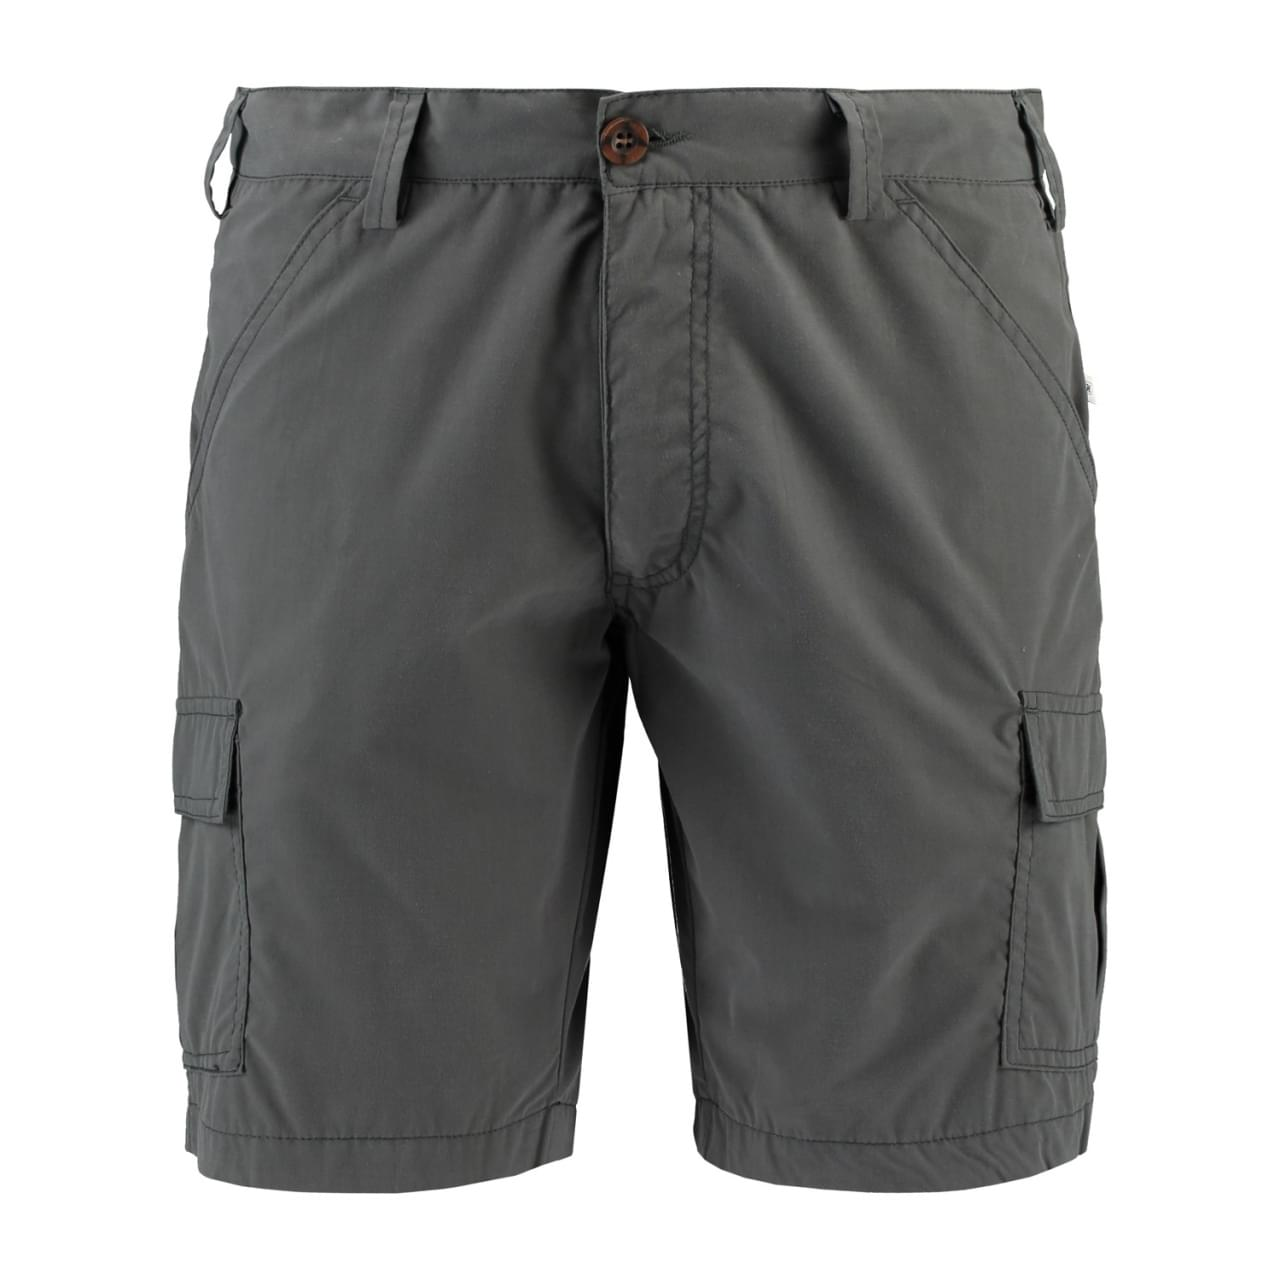 Life-Line Pelican 2 Men's Short Ritex